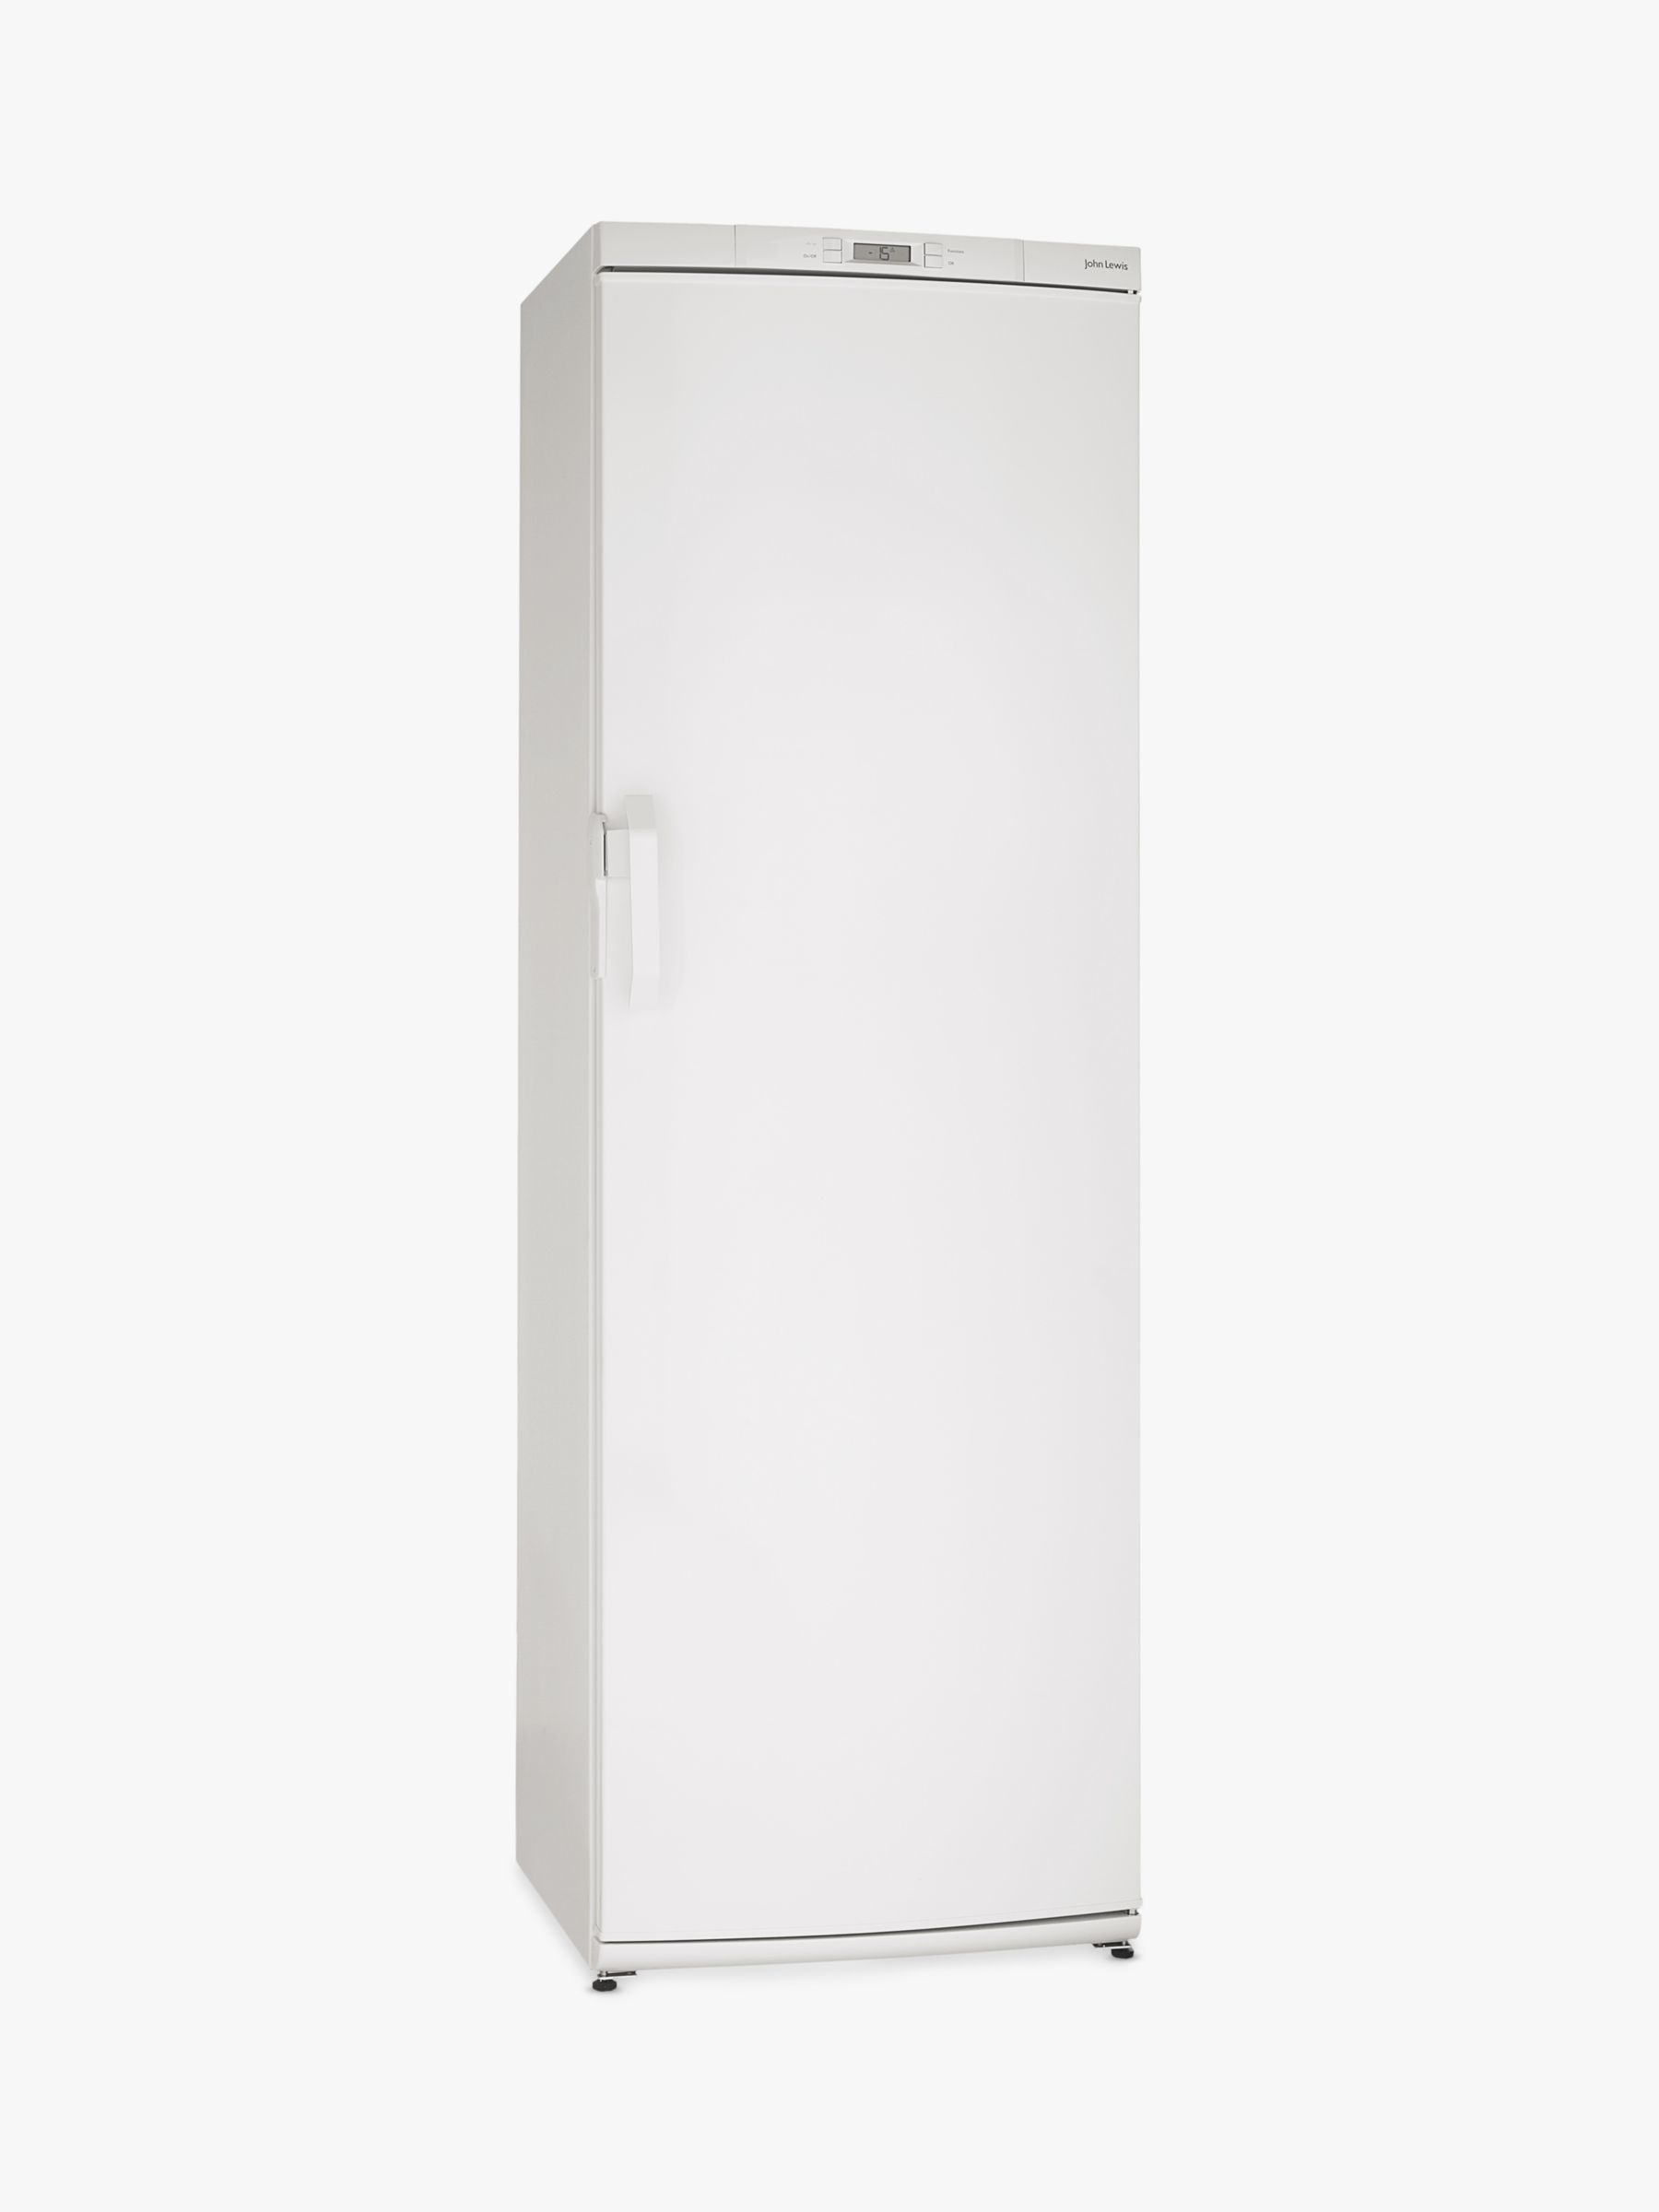 John Lewis & Partners JLFZW1817 Tall Freezer, A+ Energy Rating, 60cm ...